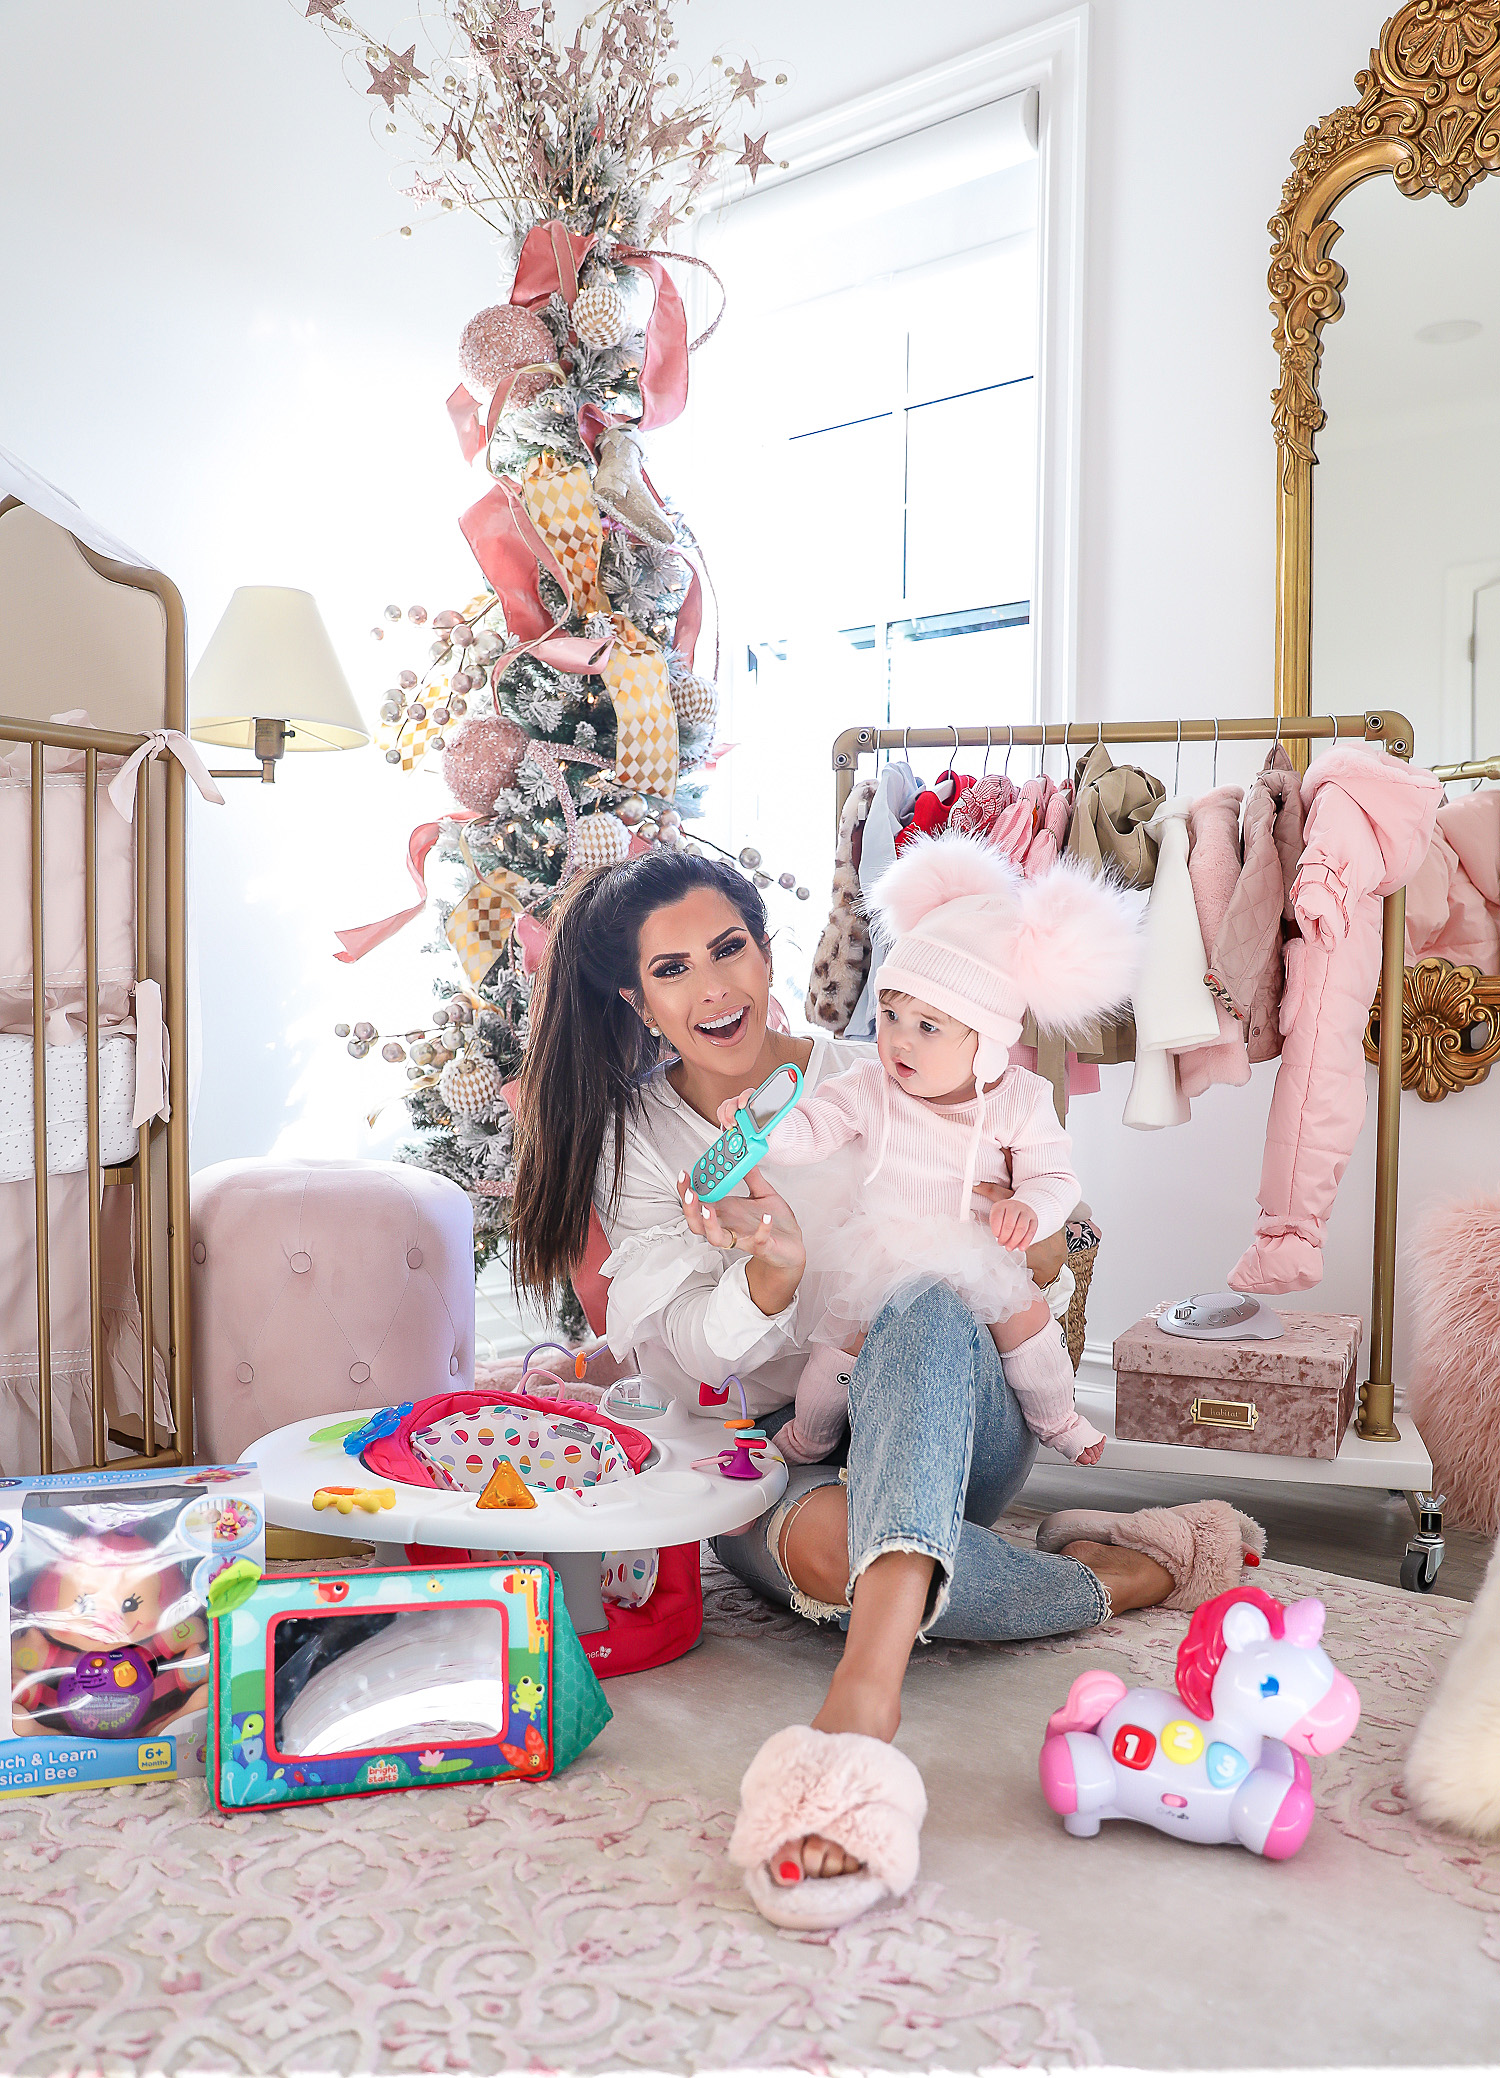 Affordable baby gifs featured by top US life and style blogger, Emily Gemma of The Sweetest Thing. baby girl nursery christmas time pinterest, christmas tree baby girl pink, emily gemma, tree, Christmas tree inspiration 2019, best baby gifts 6 month old christmas33